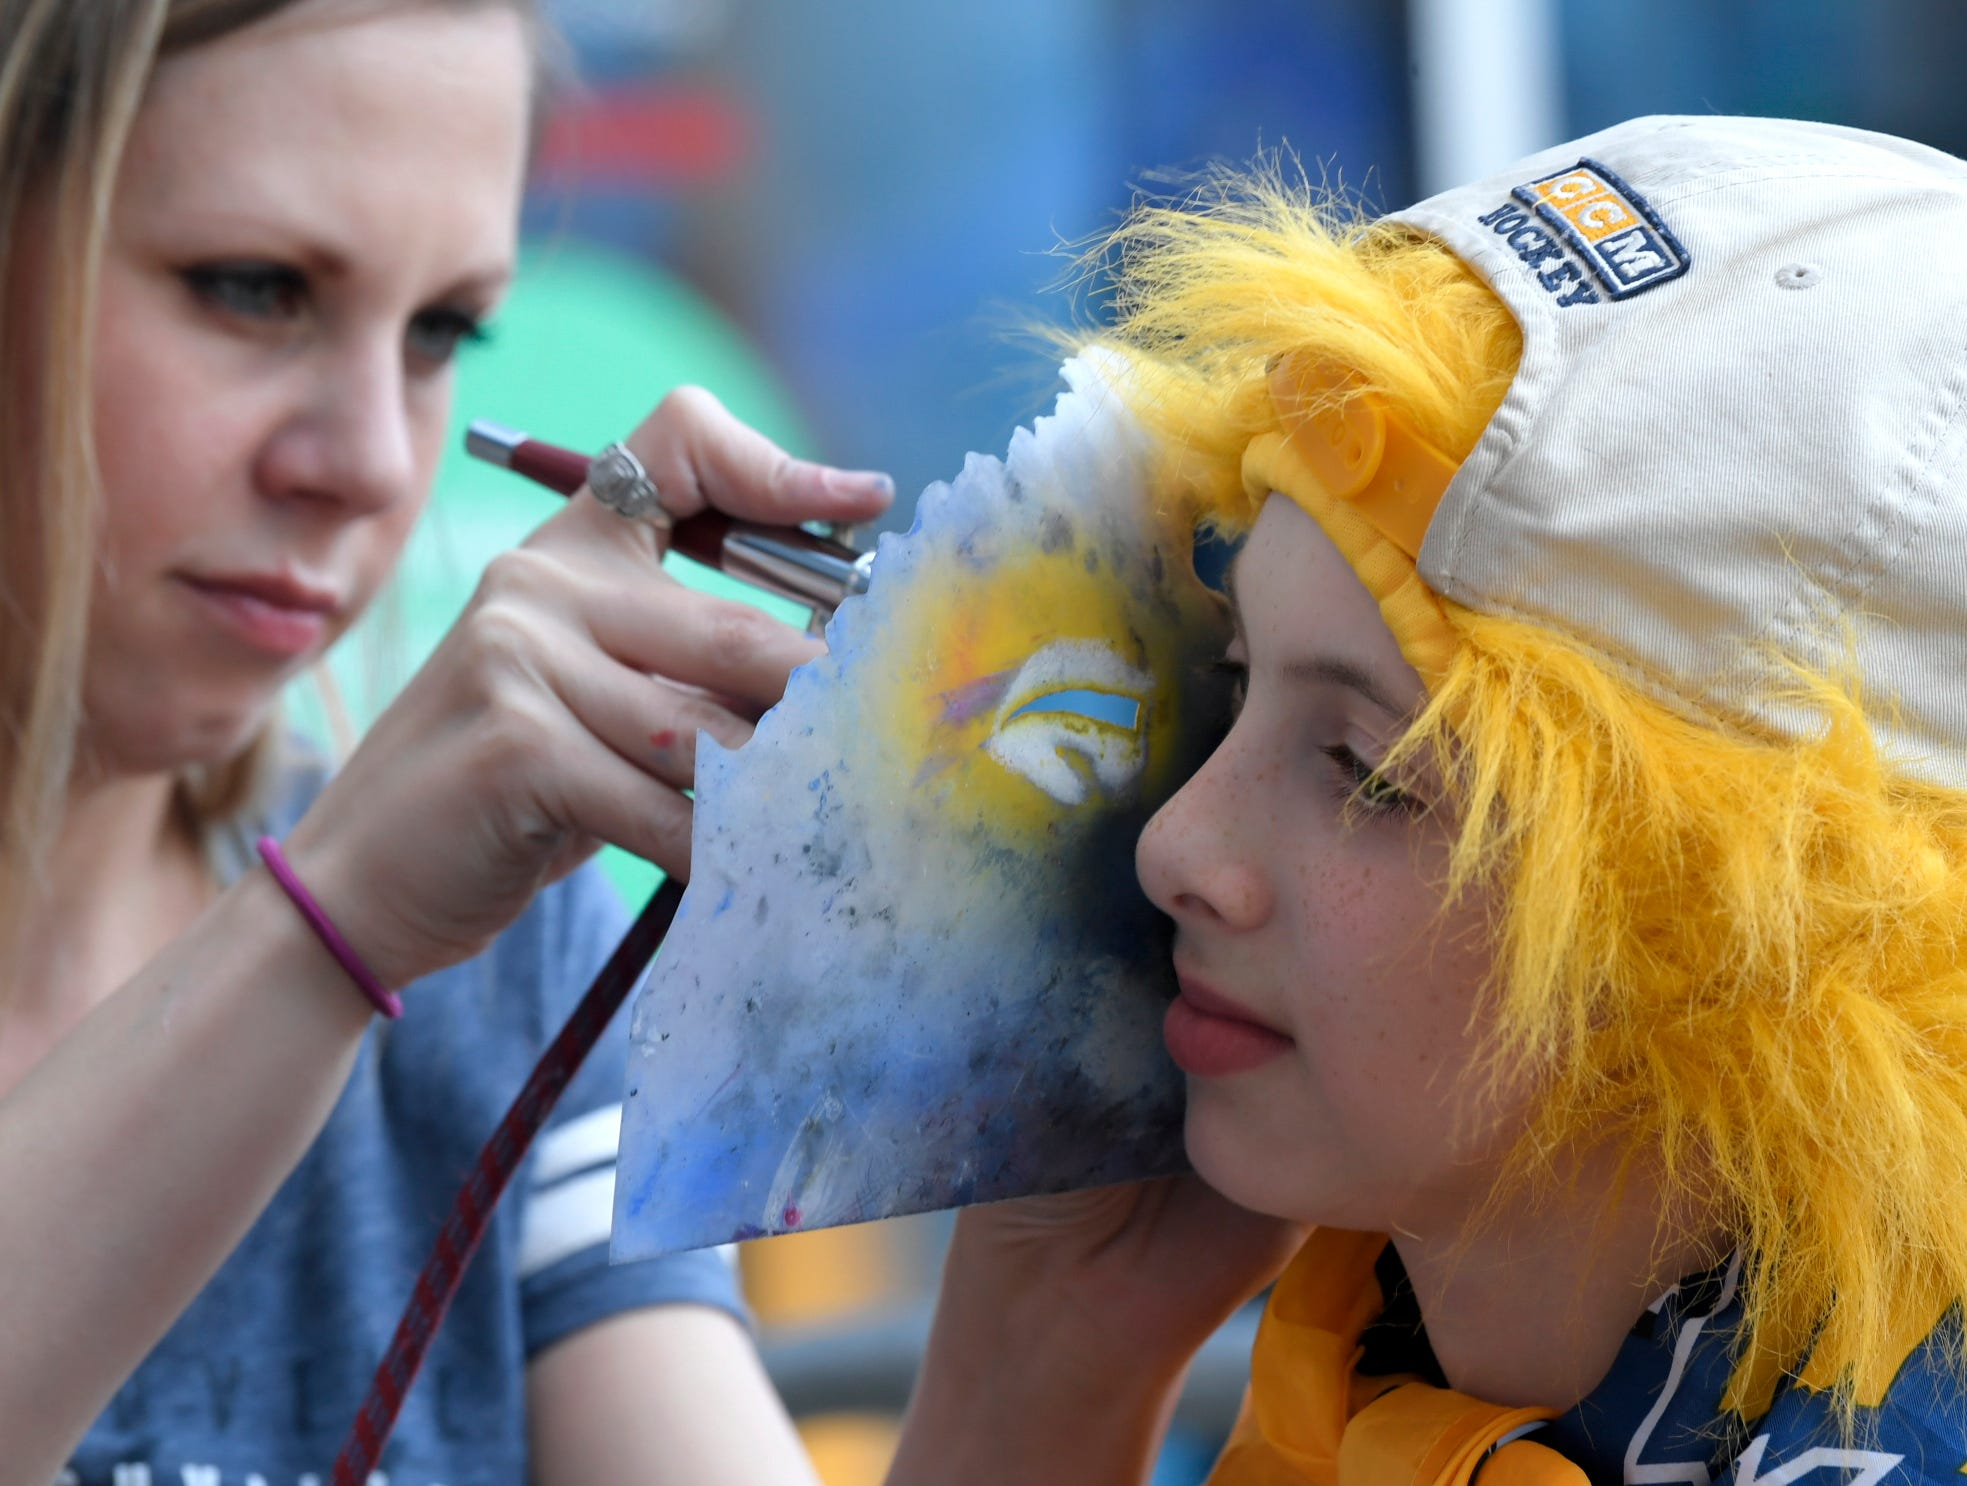 A young Predators fan gets his face painted before the divisional semifinal game at Bridgestone Arena in Nashville, Tenn., Wednesday, April 10, 2019.